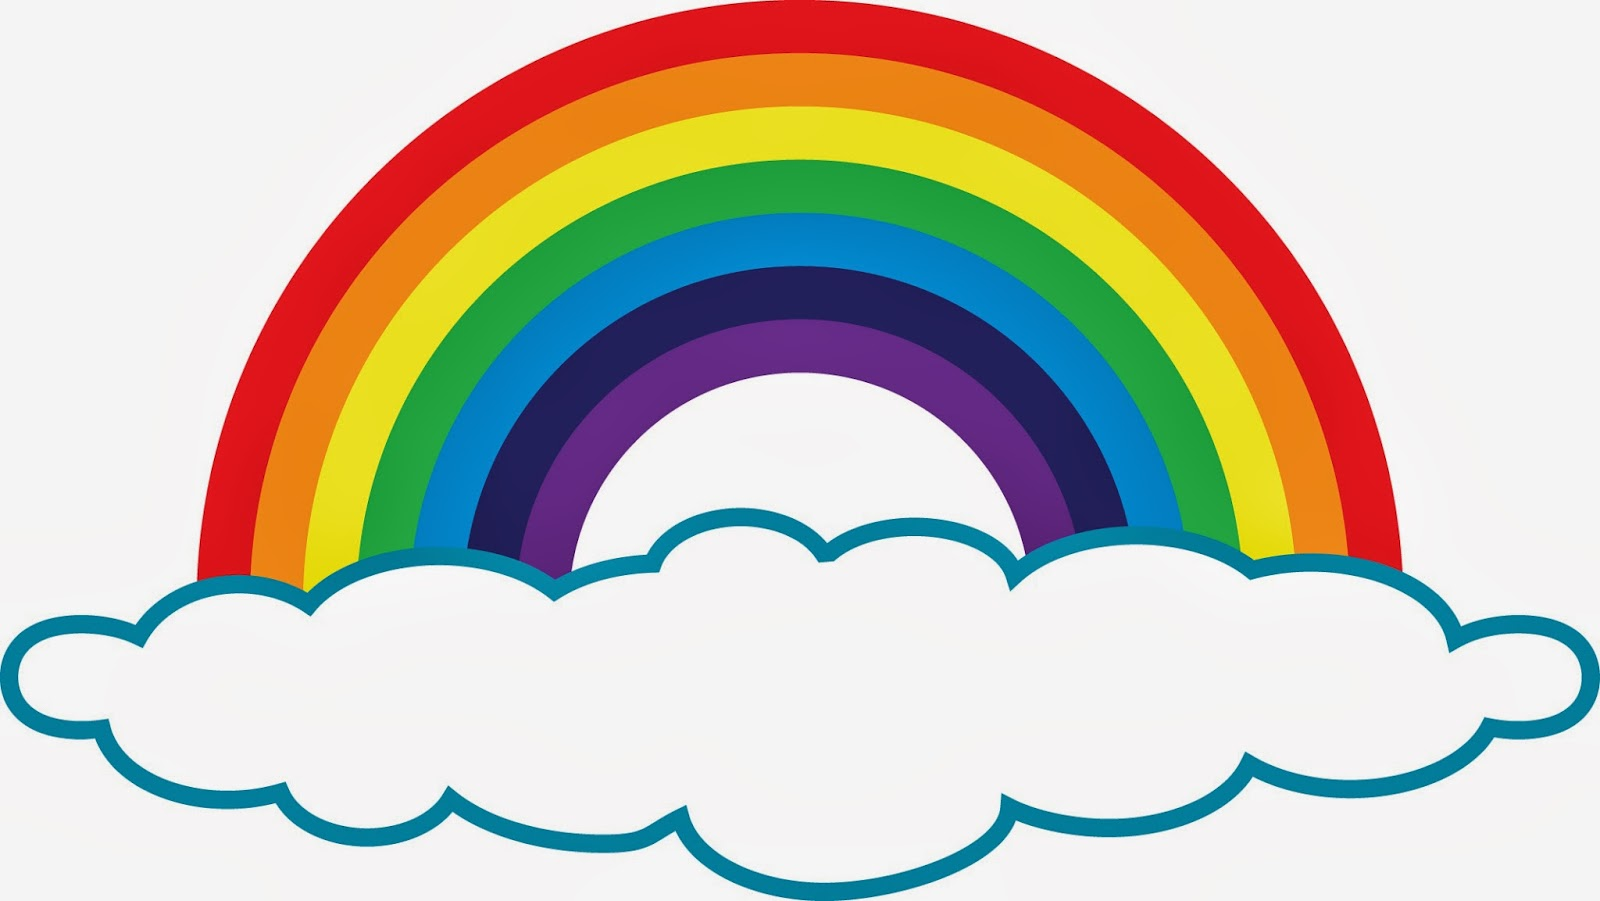 Black and white outline. 3 clipart rainbow